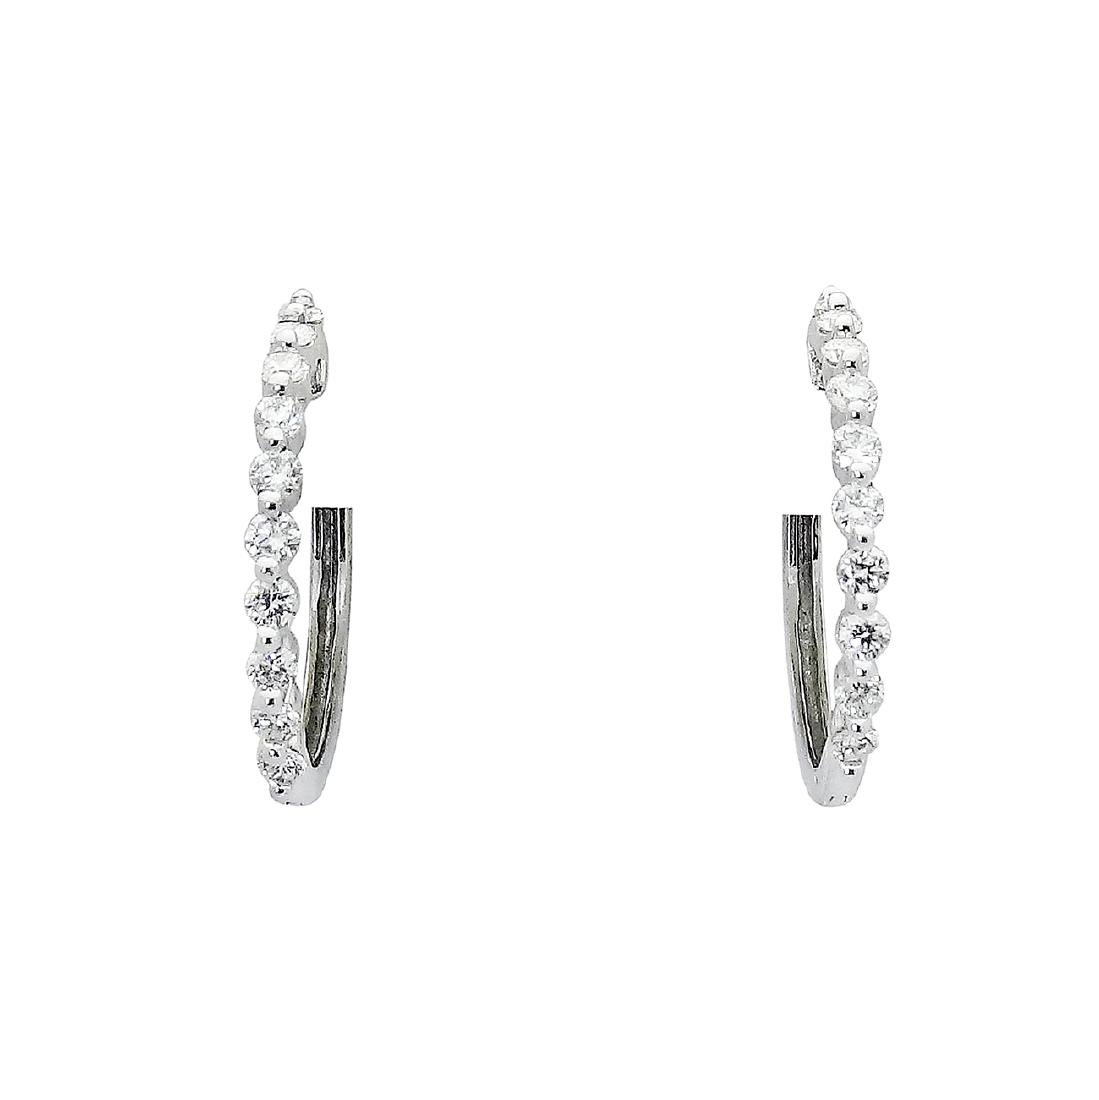 14k Gold 1.00 TCW Shared Prong Diamond Hoop Earrings - 2